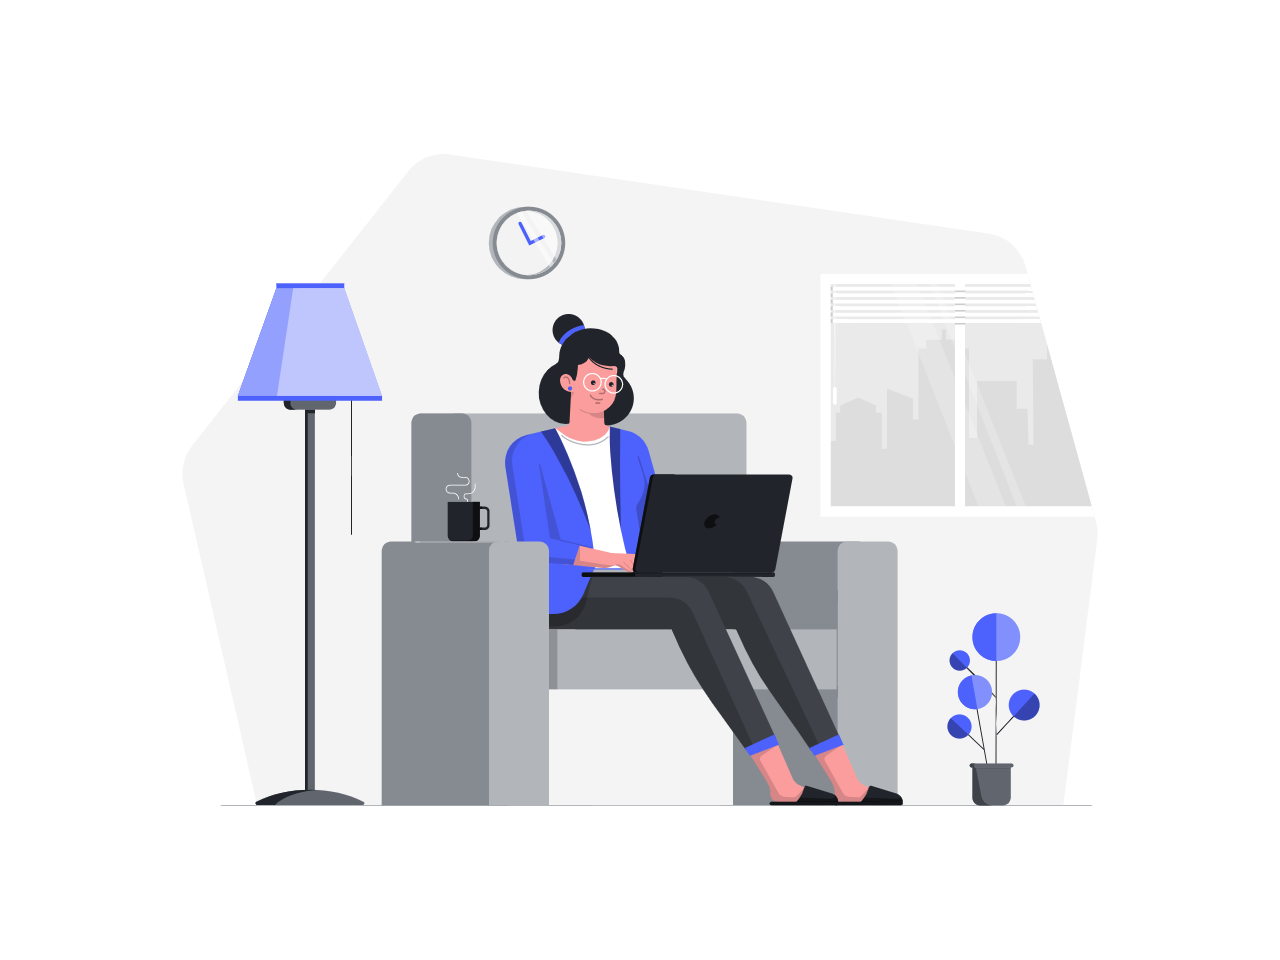 Google has made an announcement for a fresh set of changes to Google Calendar, Meet and Workspace as a whoe to cater to the needs of remote workers.